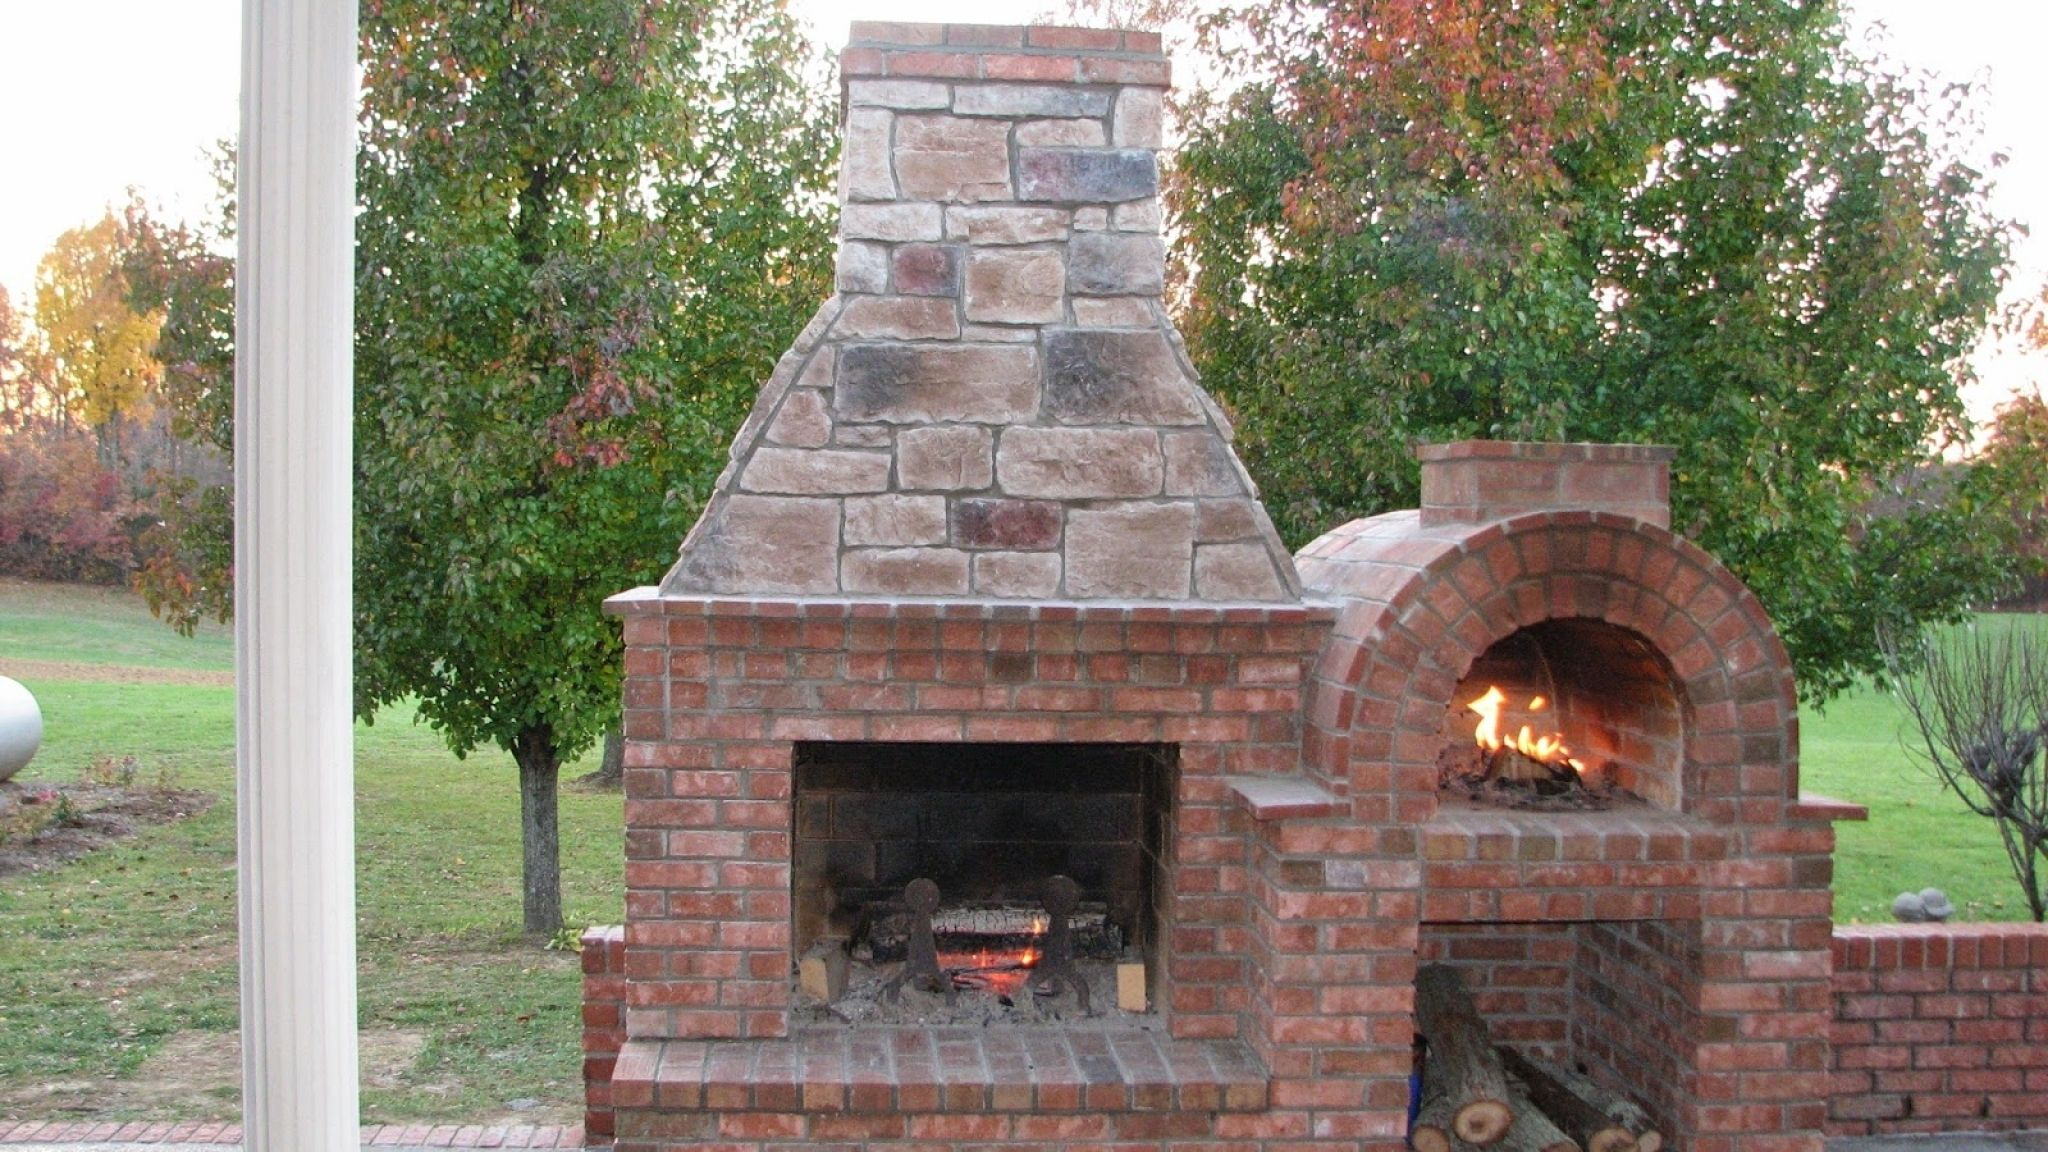 How To Build An Outdoor Brick Fireplace Fireplace Design Ideas Outdoor Fireplace Plans Outdoor Fireplace Designs Outdoor Fireplace